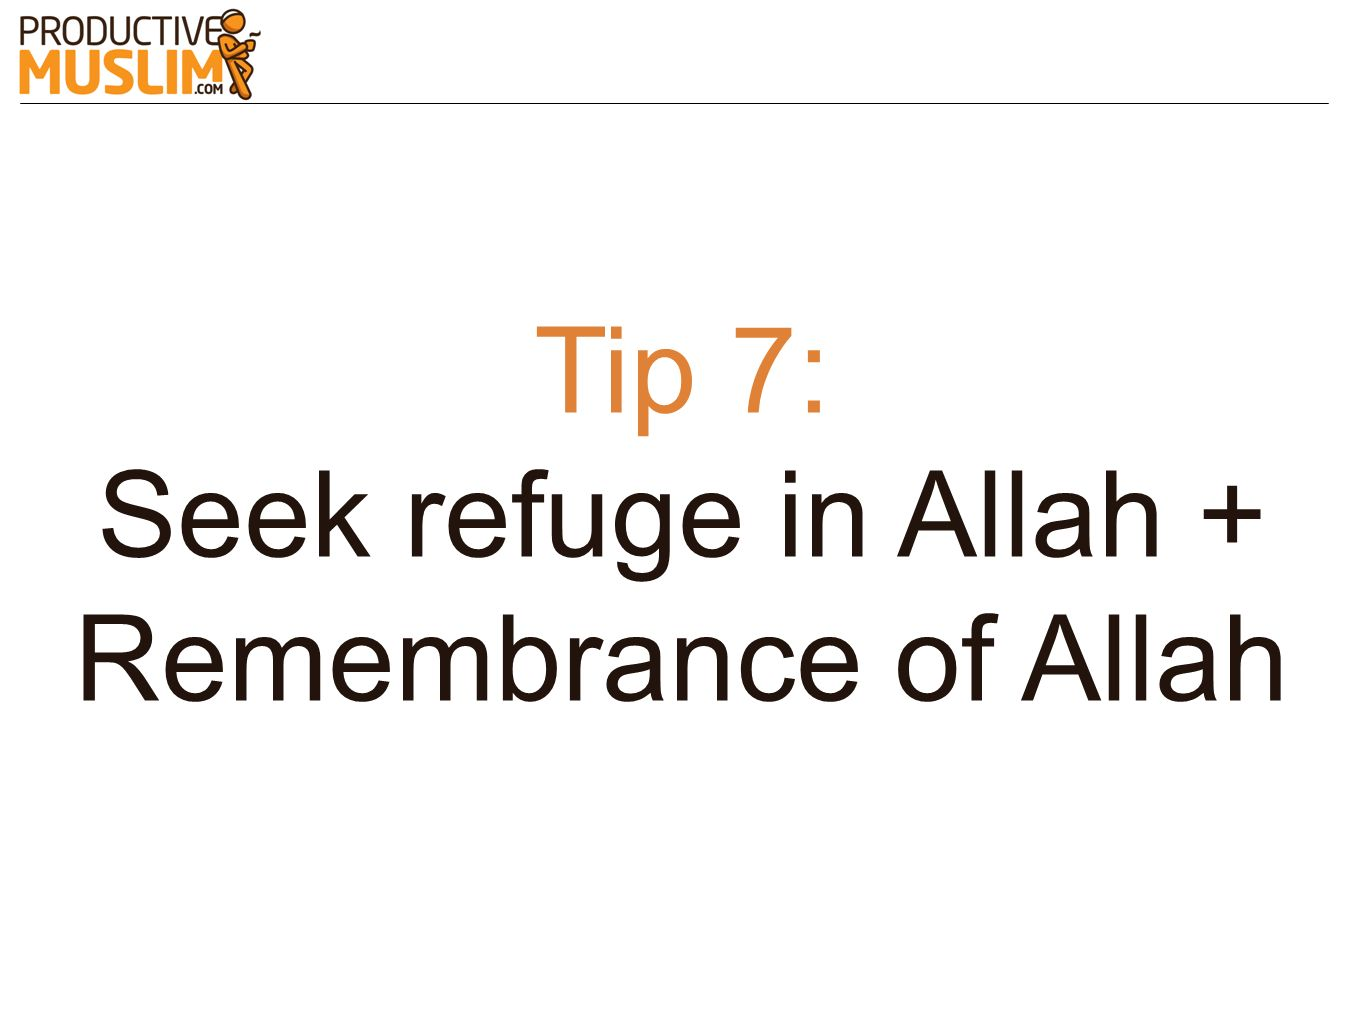 Seek refuge in Allah + Remembrance of Allah